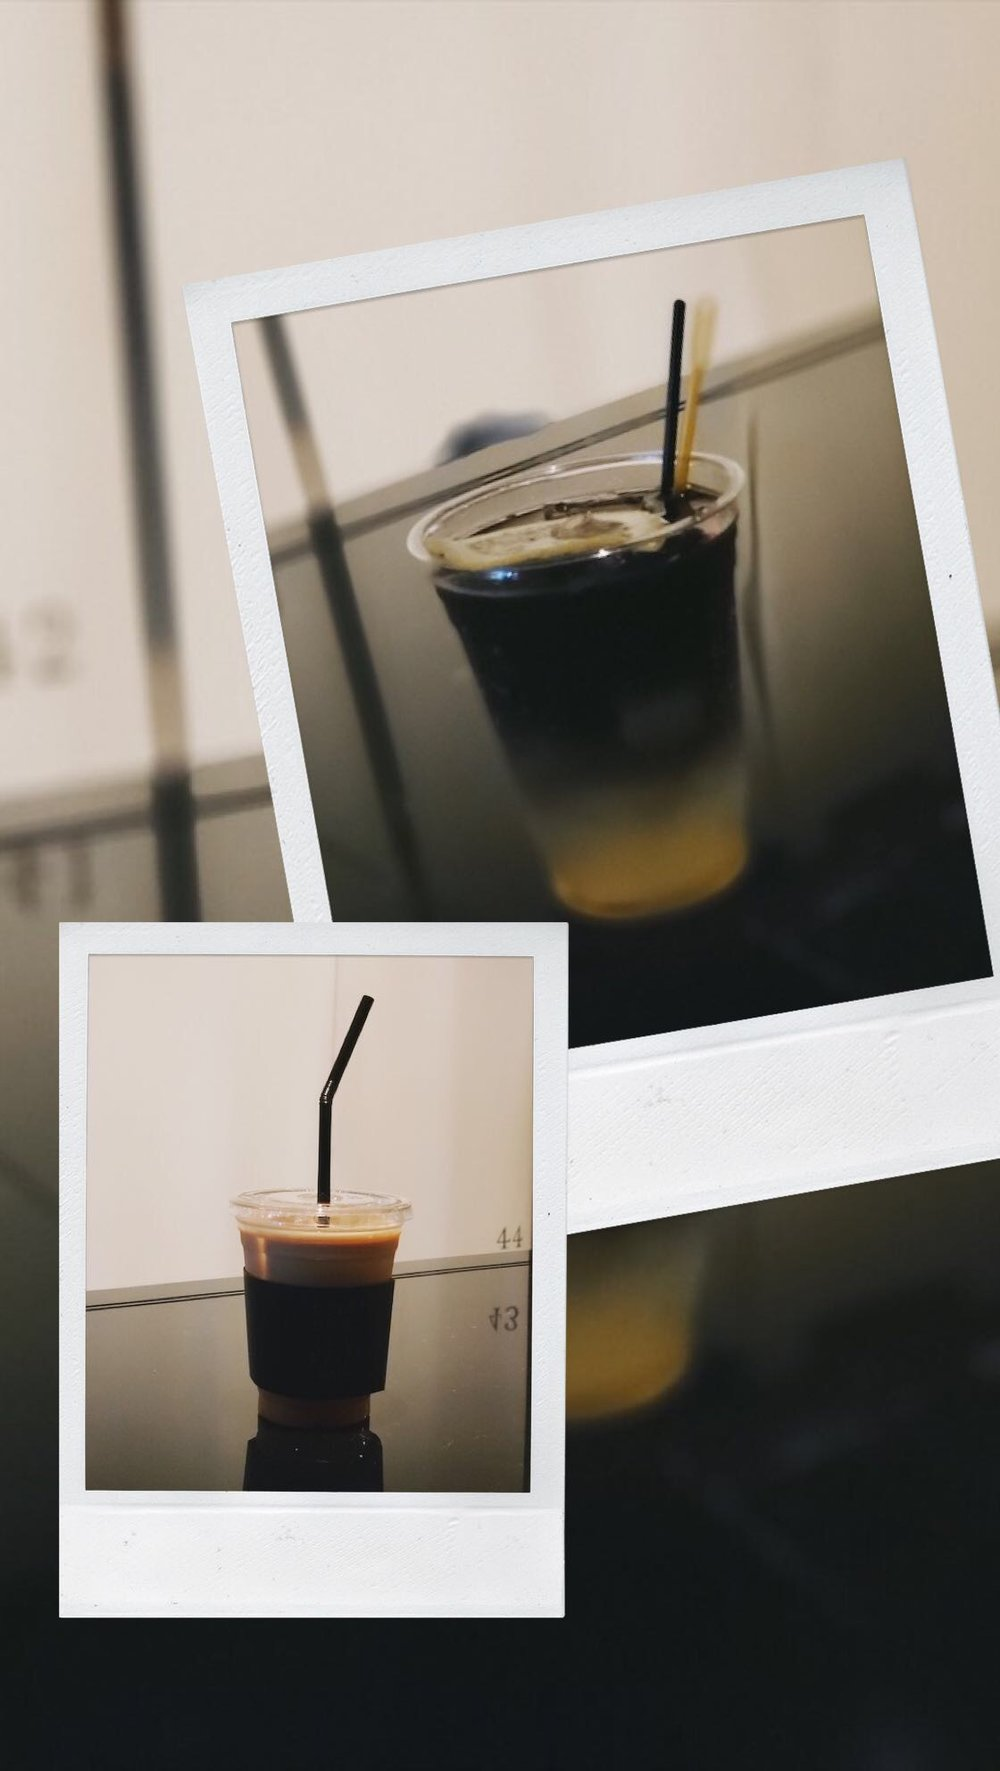 I got an iced latte per usual and Jill got a black lemonade. All of their tea drinks were literally black and looked so cool.